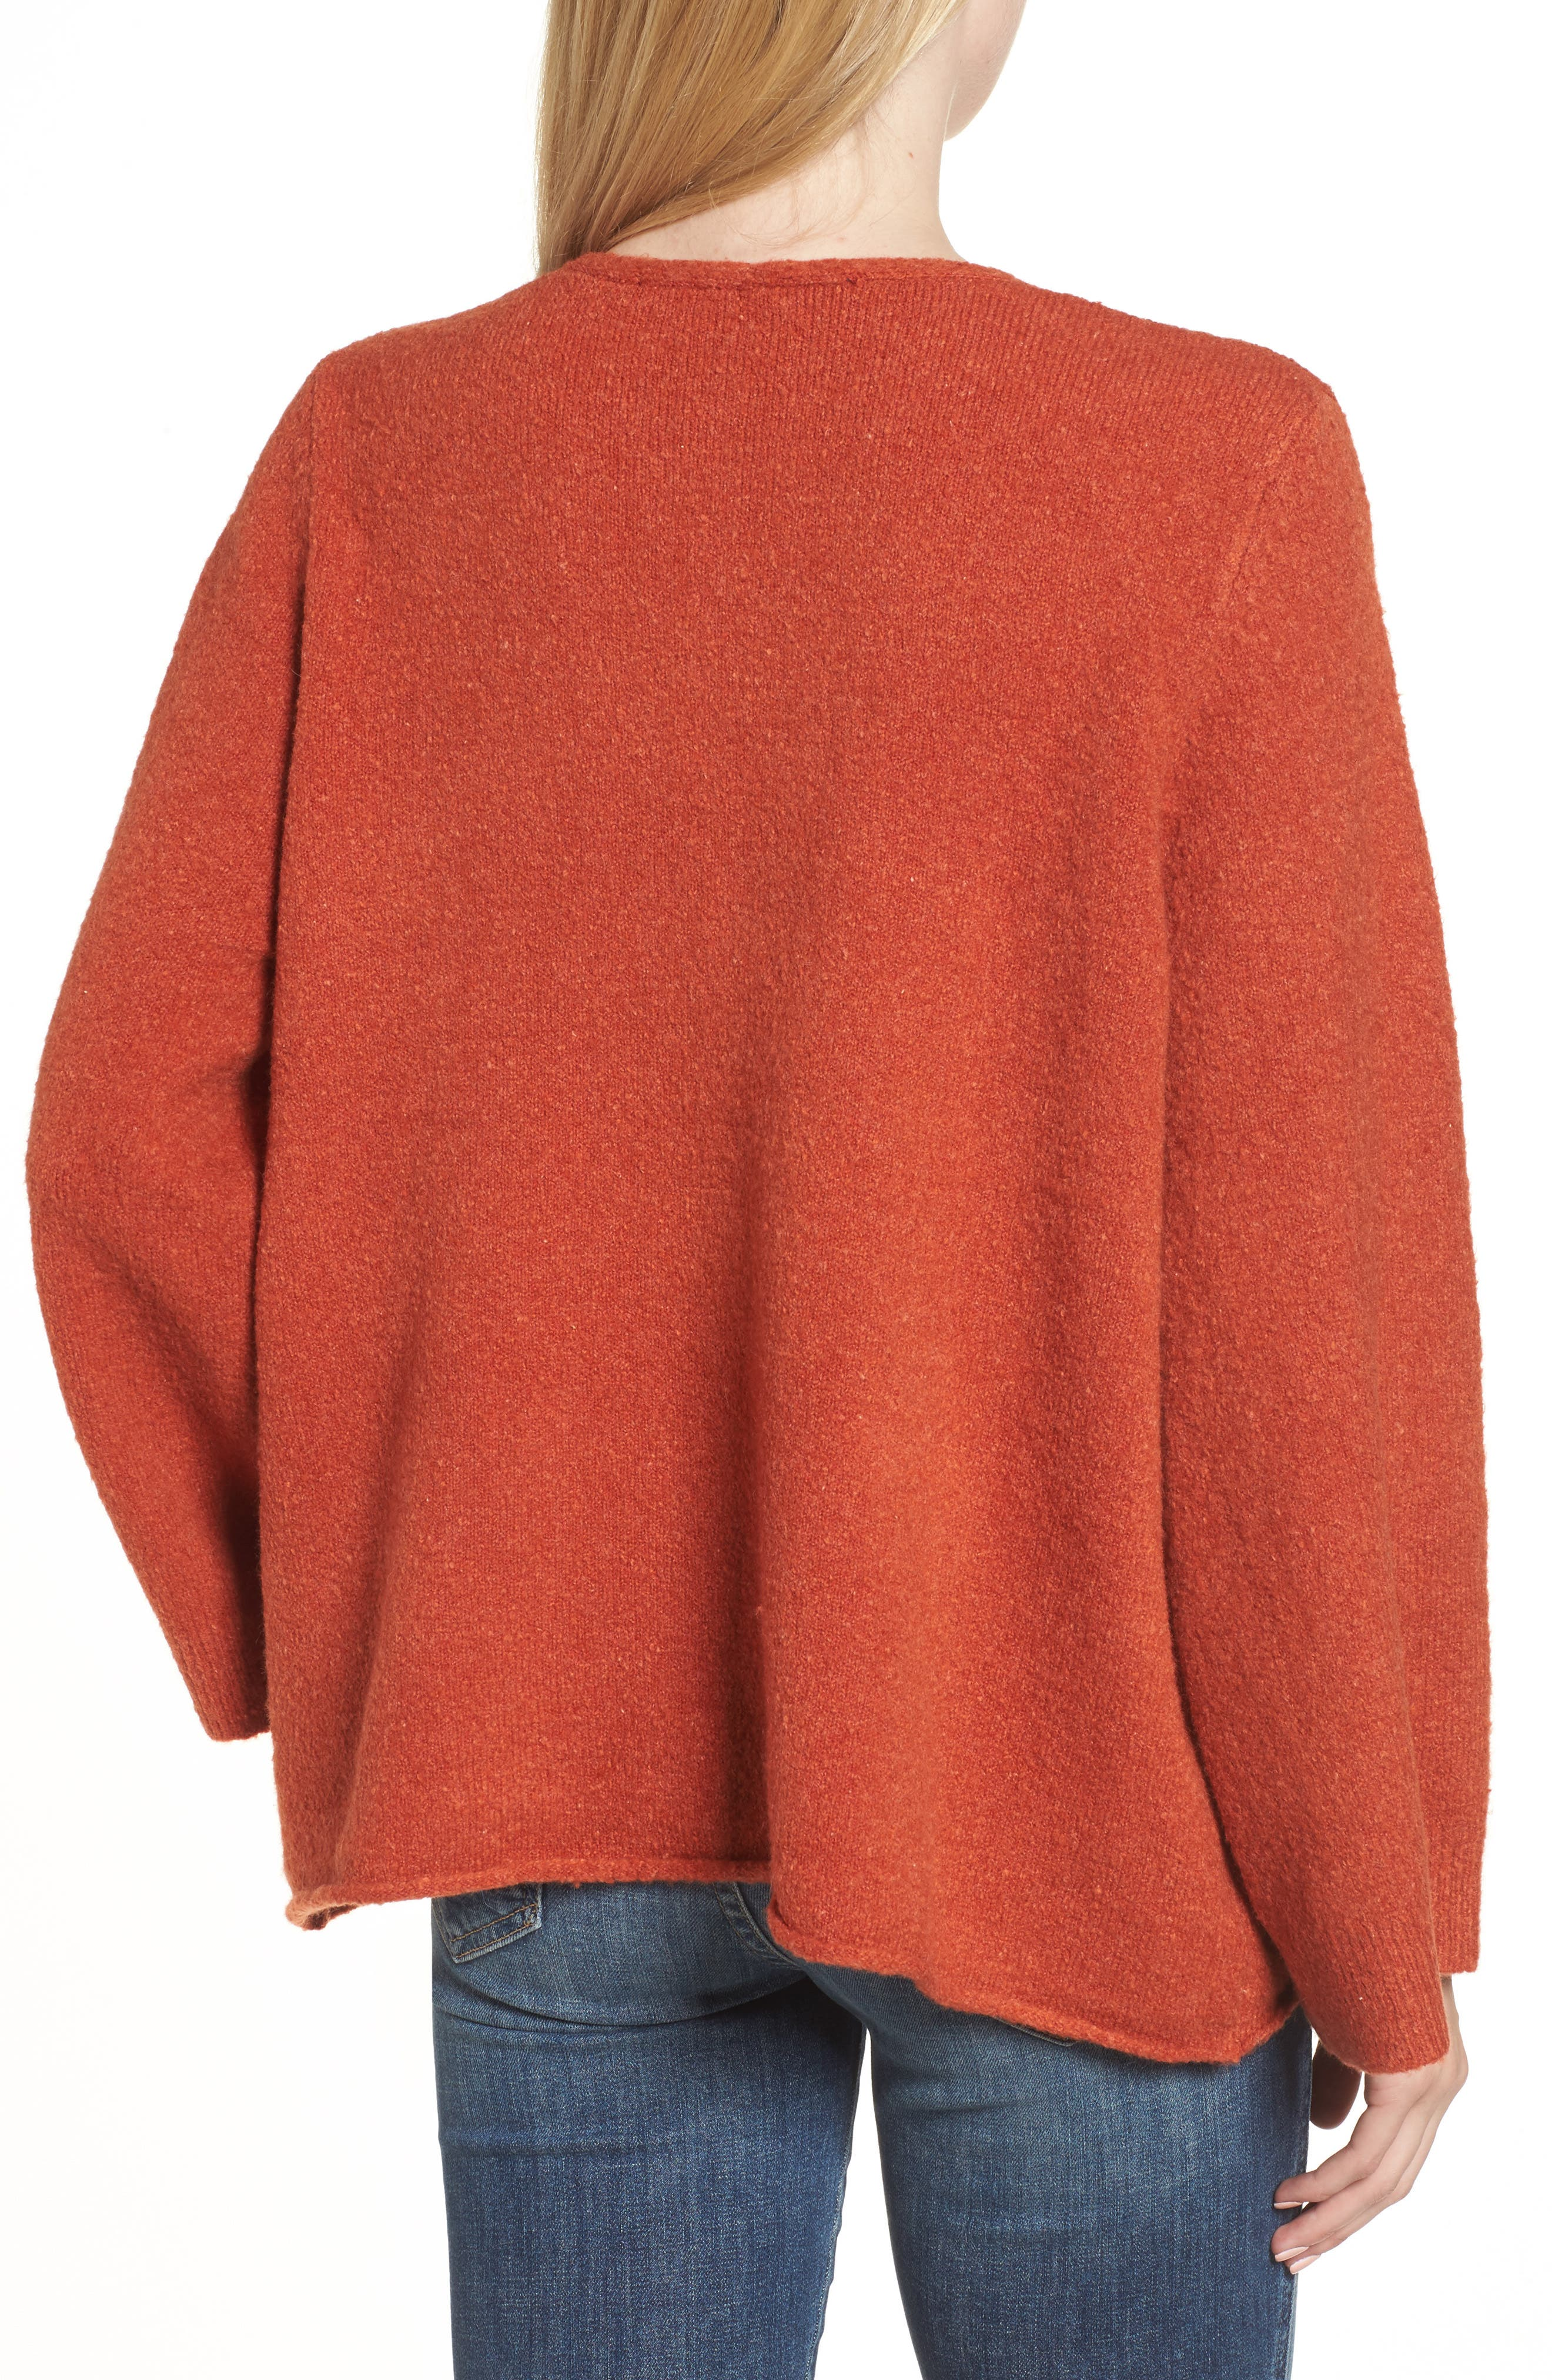 Urban Flossy Sweater,                             Alternate thumbnail 2, color,                             Copper Coin